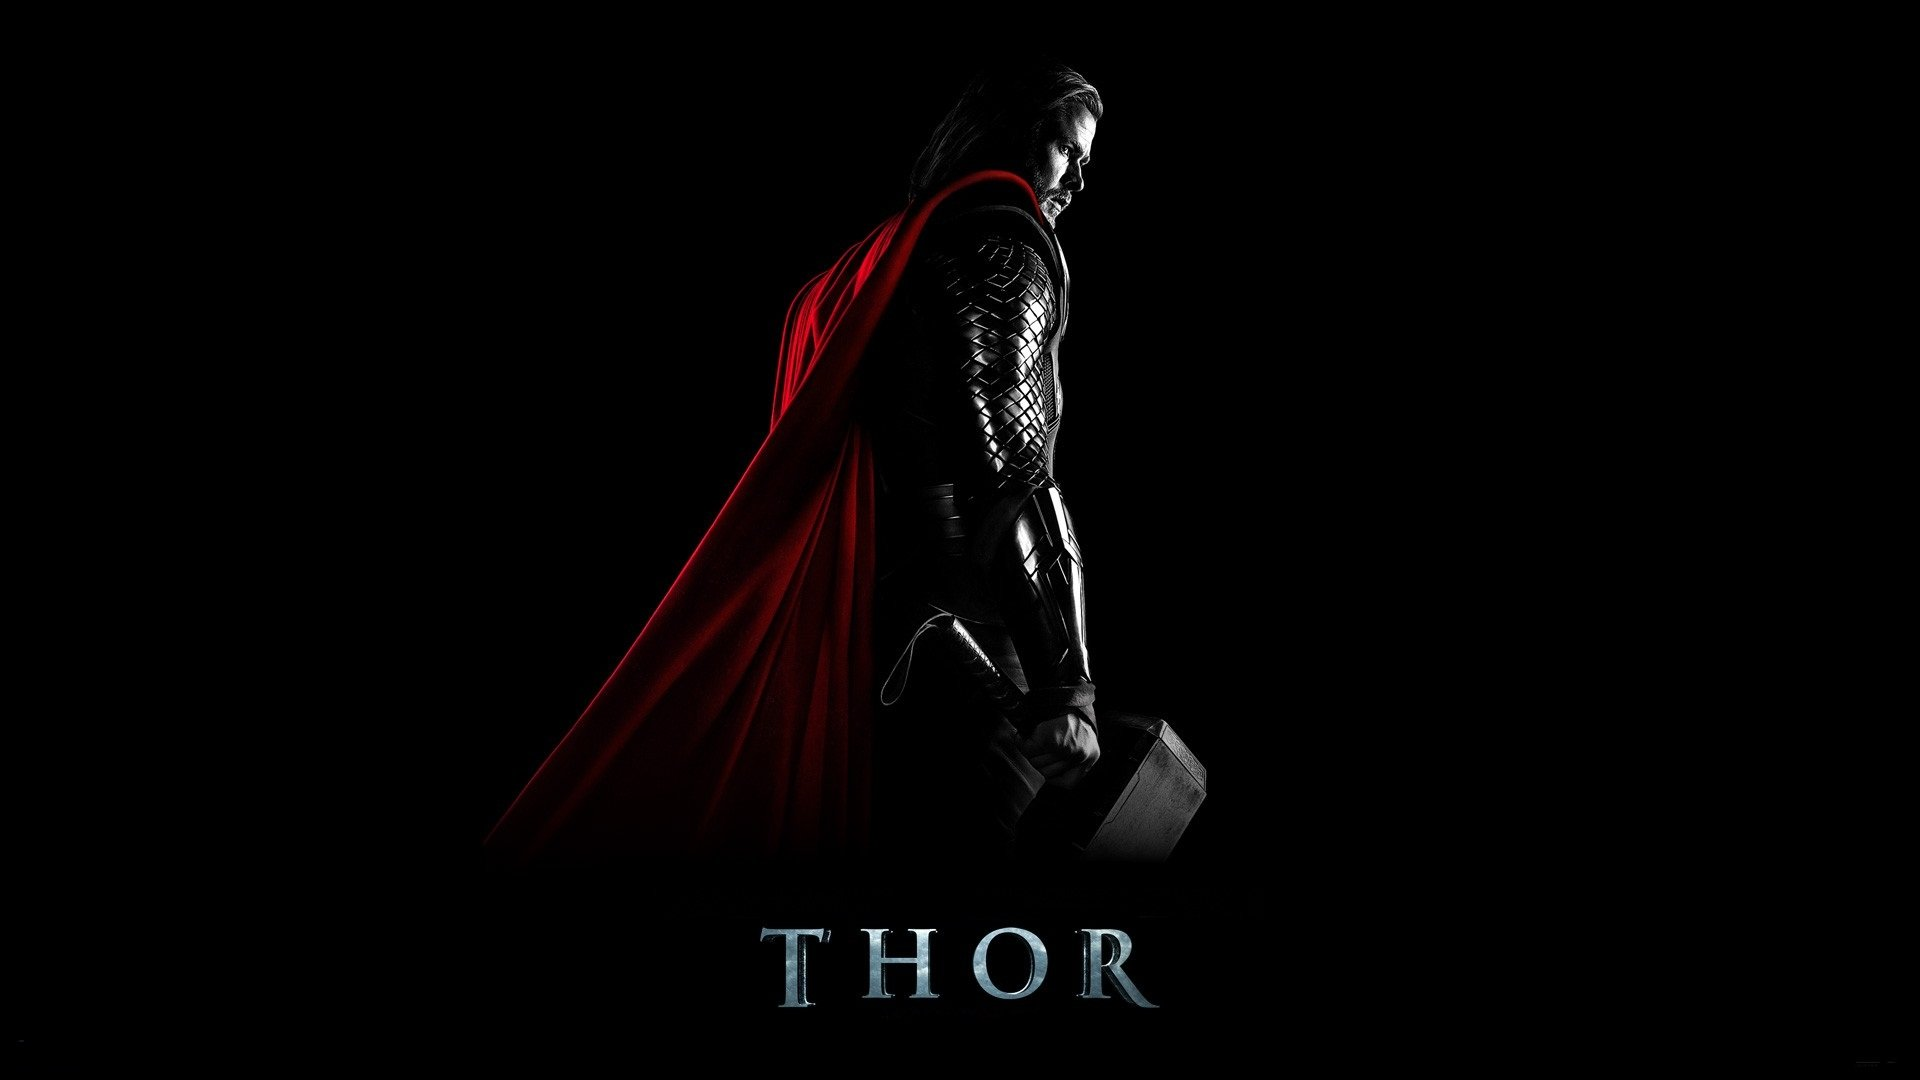 Download hd 1920x1080 Thor PC background ID:245914 for free